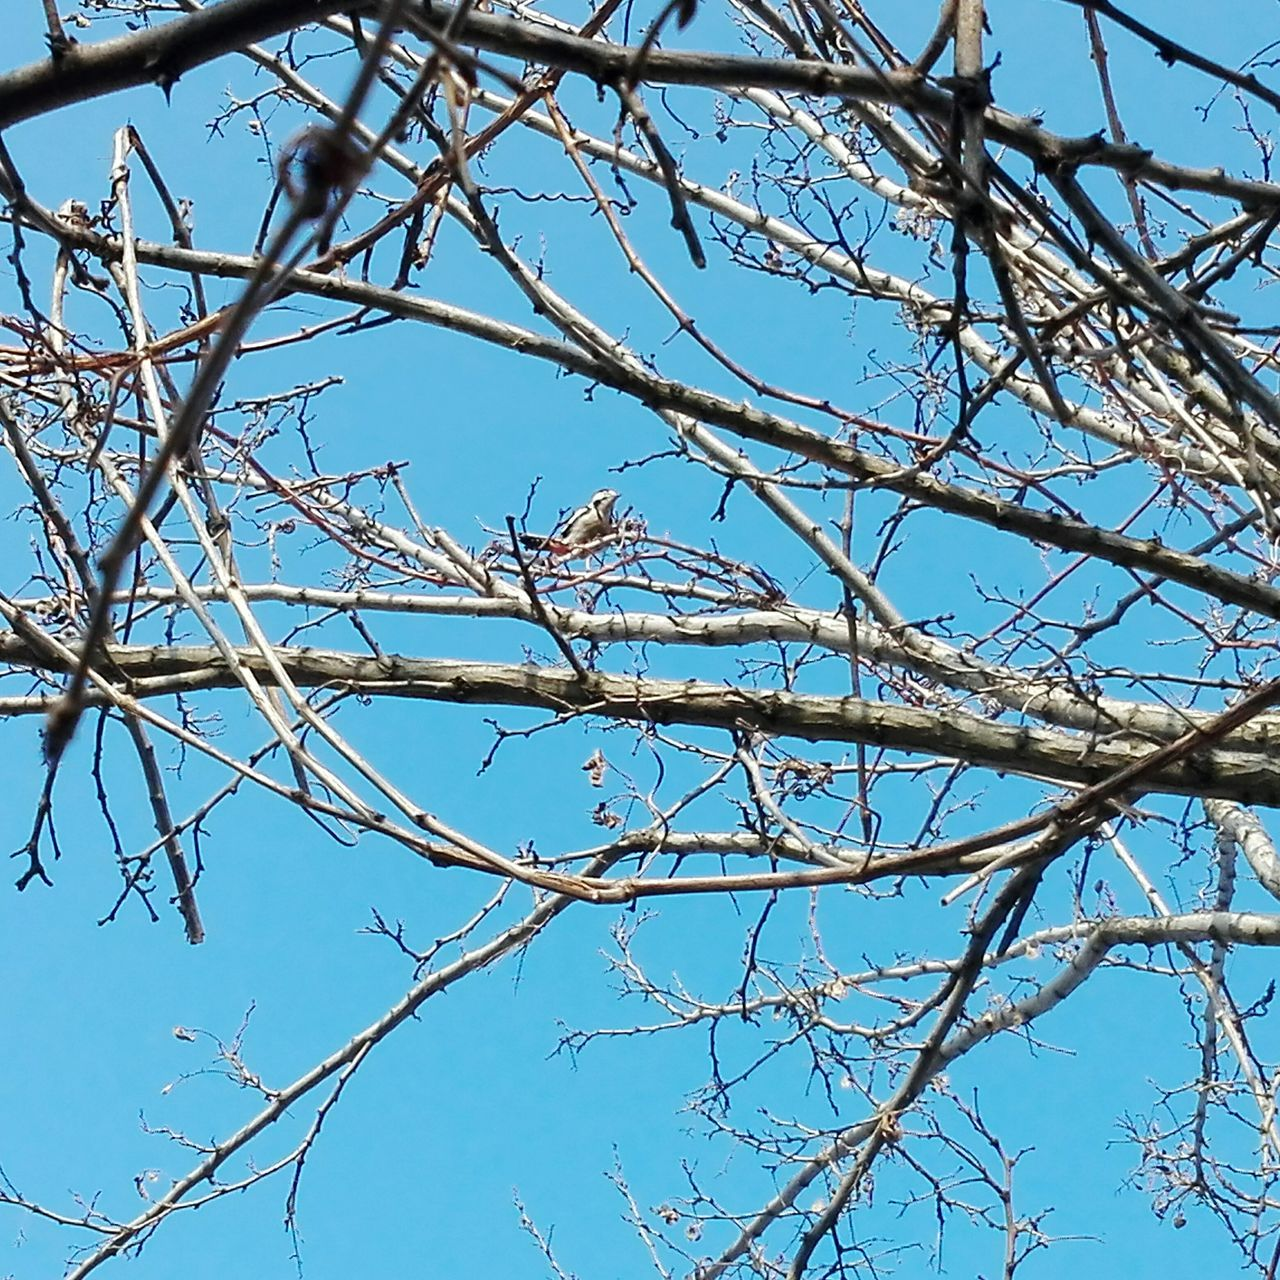 Low Angle View Branch Beauty In Nature No People Sky Tree Nature Outdoors Day Blue On Market Showcase: January Edited By @wolfzuachis Showcase: 2017 @WOLFZUACHiV Veronicaionita Eyeem Market Huaweiphotography Wolfzuachiv Woodpecker Bird Woodpecker On Tree Woodpecker In Tree Bird Woodpecker